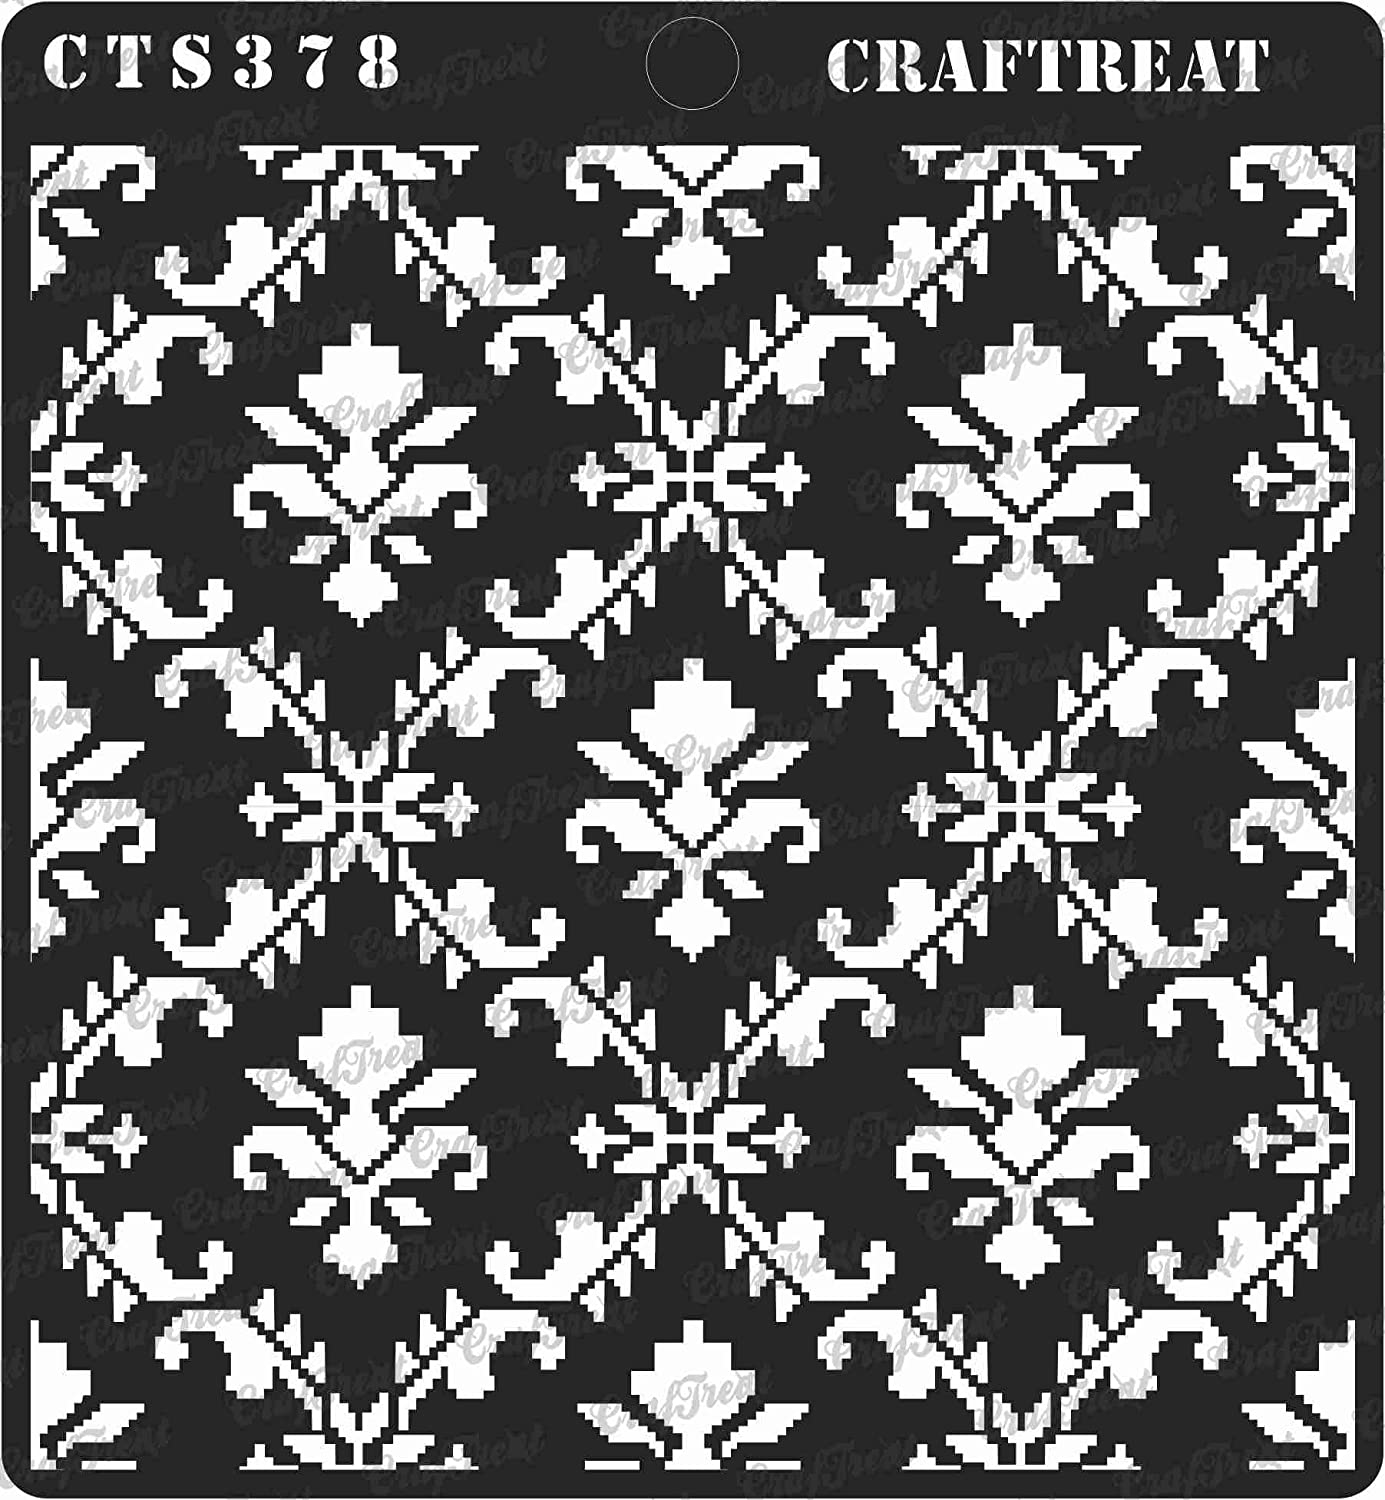 Wall DIY Albums Scattered Leaves and Foliage2 Scrapbook and Printing on Paper Crafting Tile CrafTreat Stencil - Reusable Painting Template for Home Decor 2 pcs Wood 6x6 inches Fabric